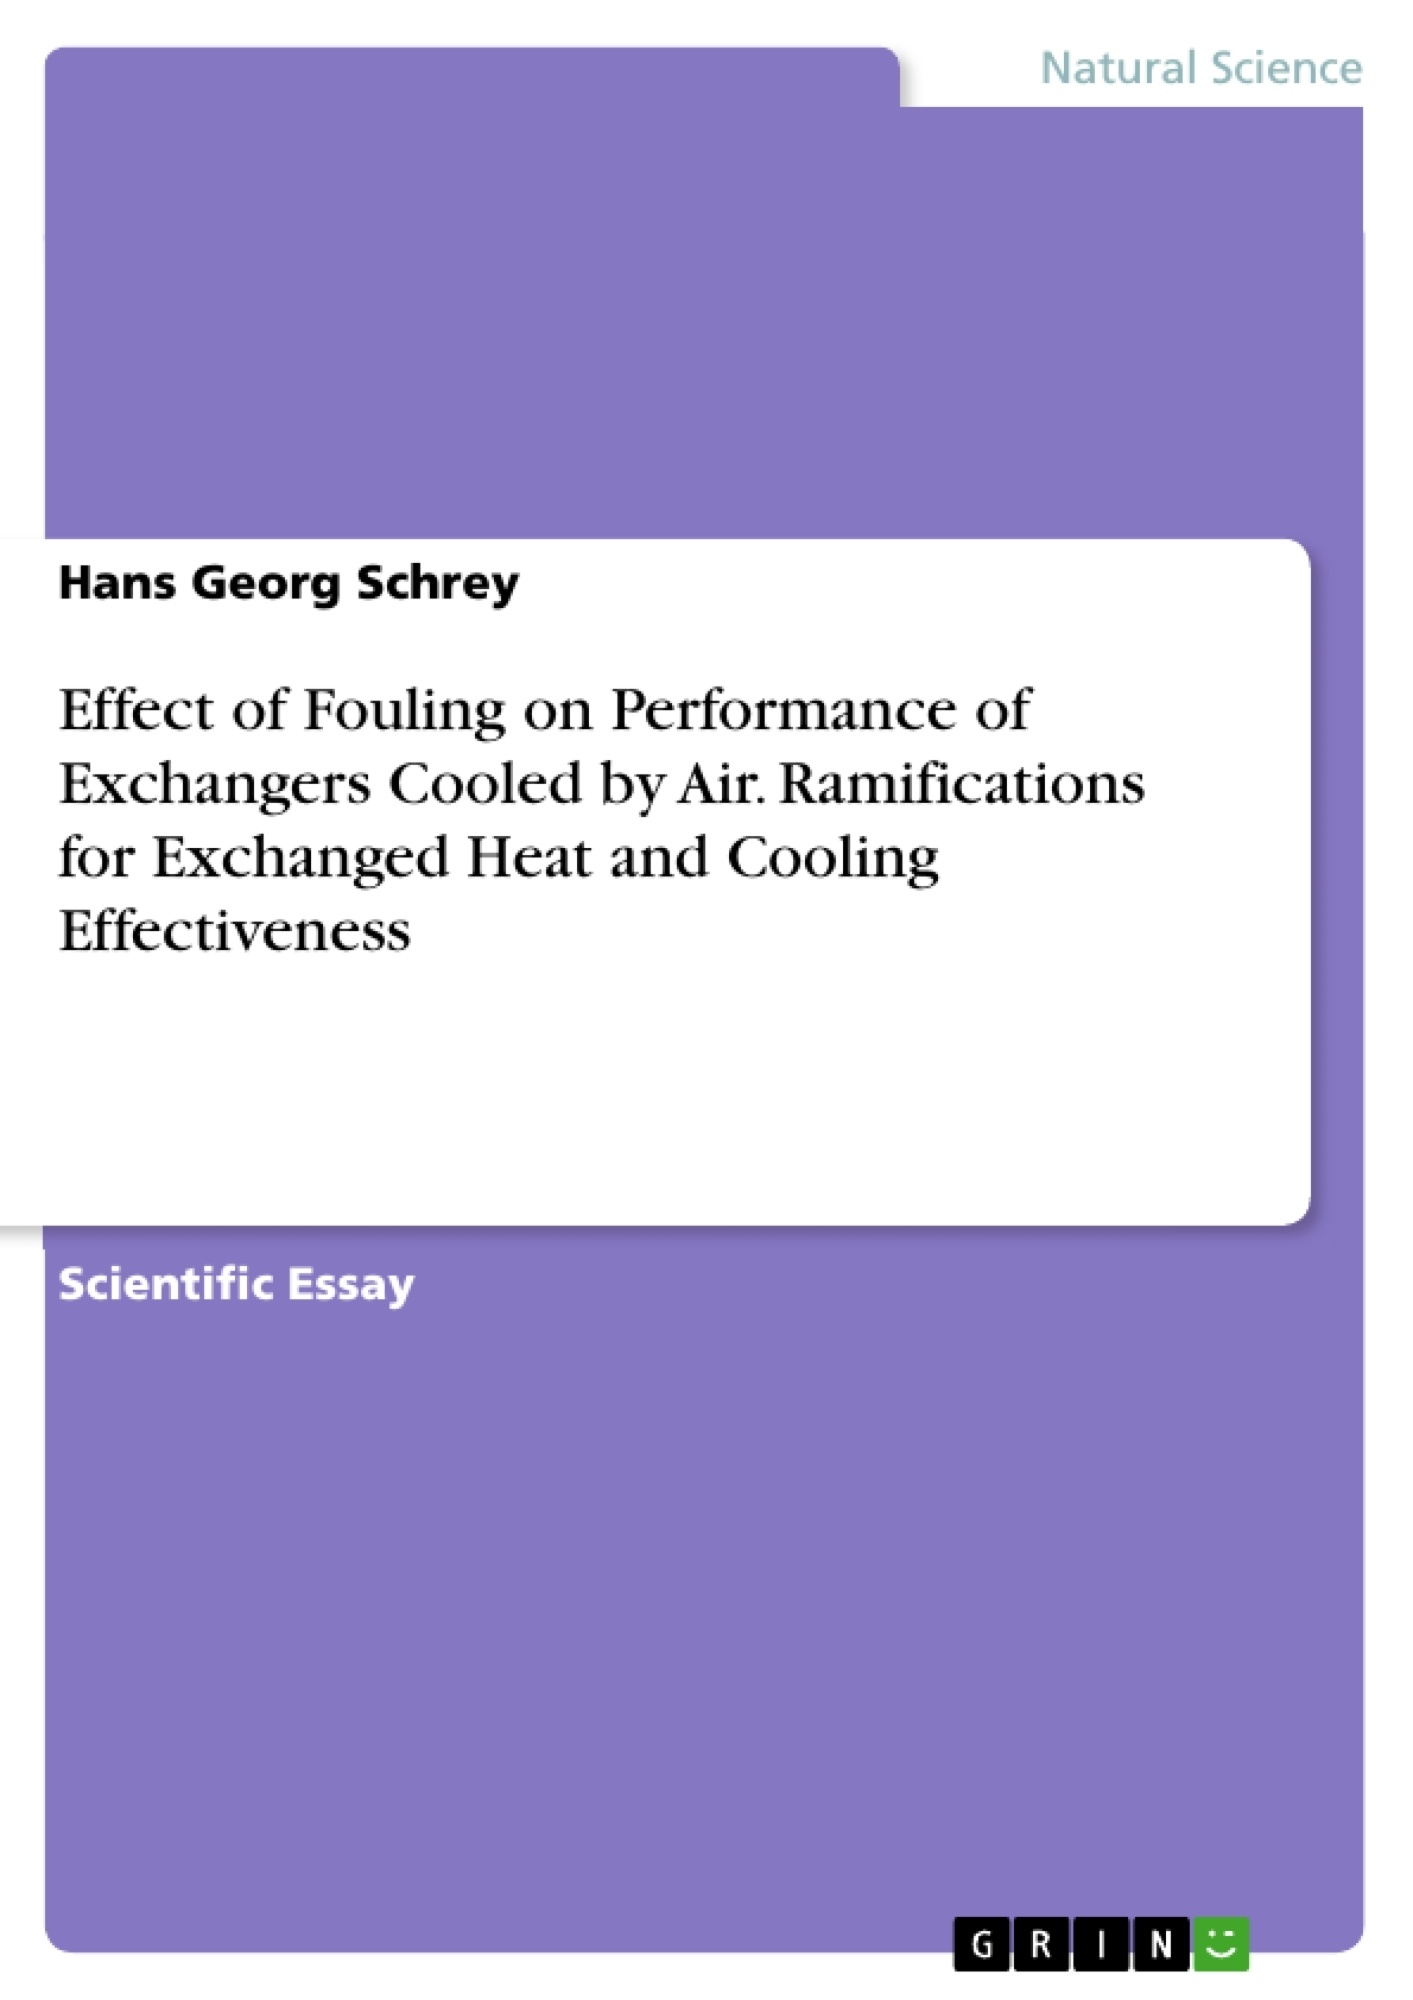 Title: Effect of Fouling on Performance of Exchangers Cooled by Air.  Ramifications for Exchanged Heat and Cooling Effectiveness